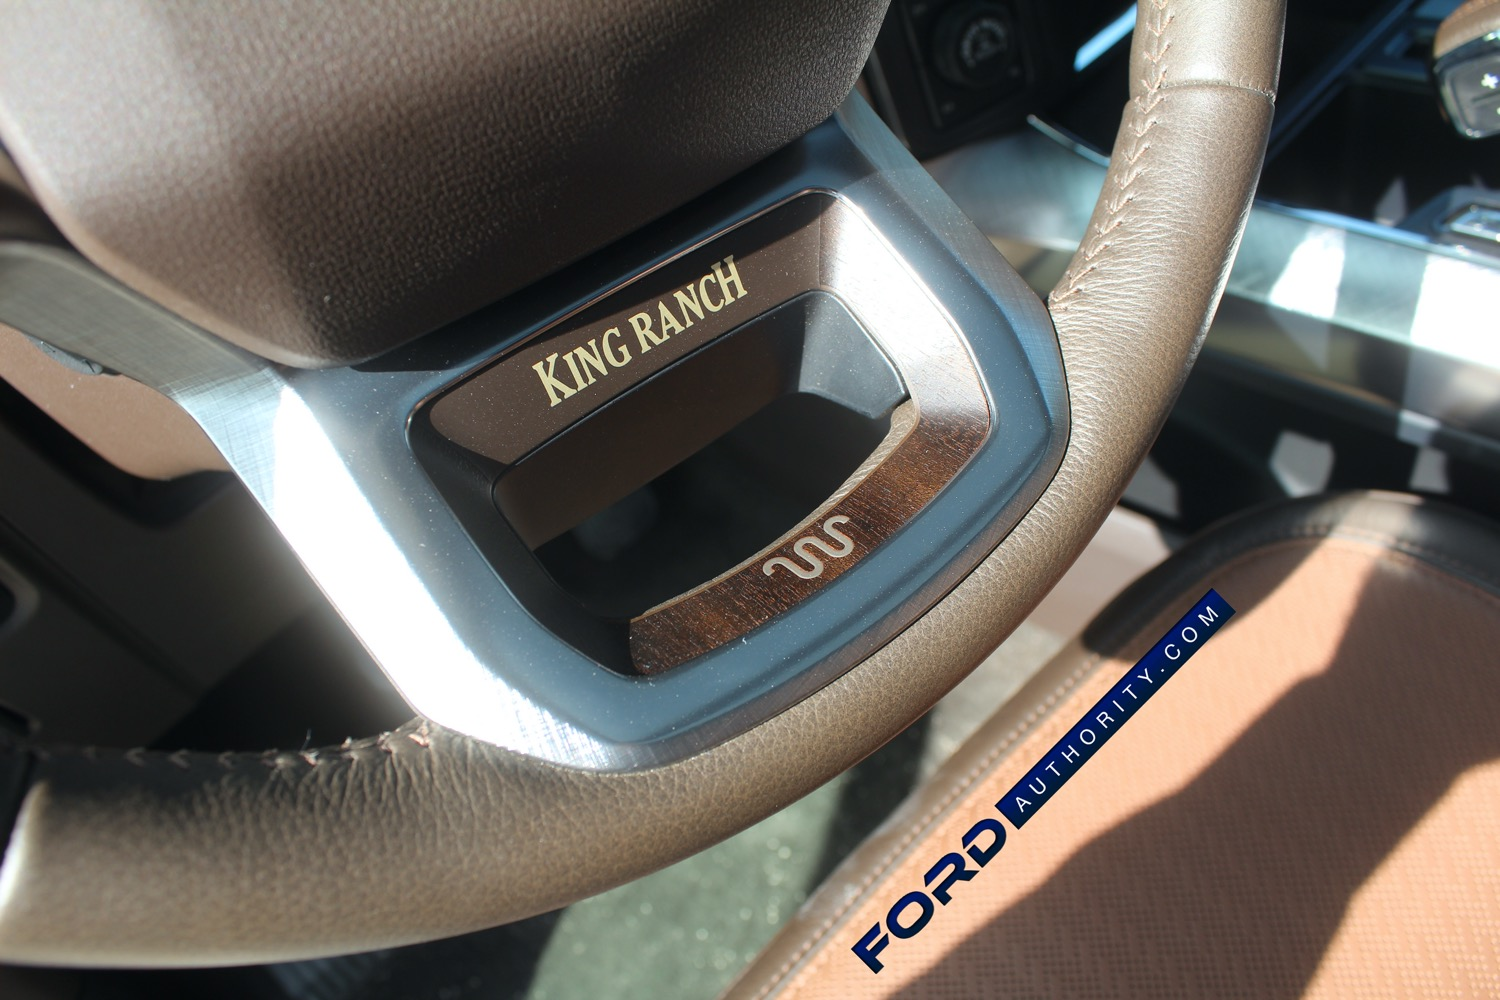 2021-Ford-F-150-King-Ranch-Interior-Front-Row-021-steering-wheel-King-Ranch-logo-and-script.jpg